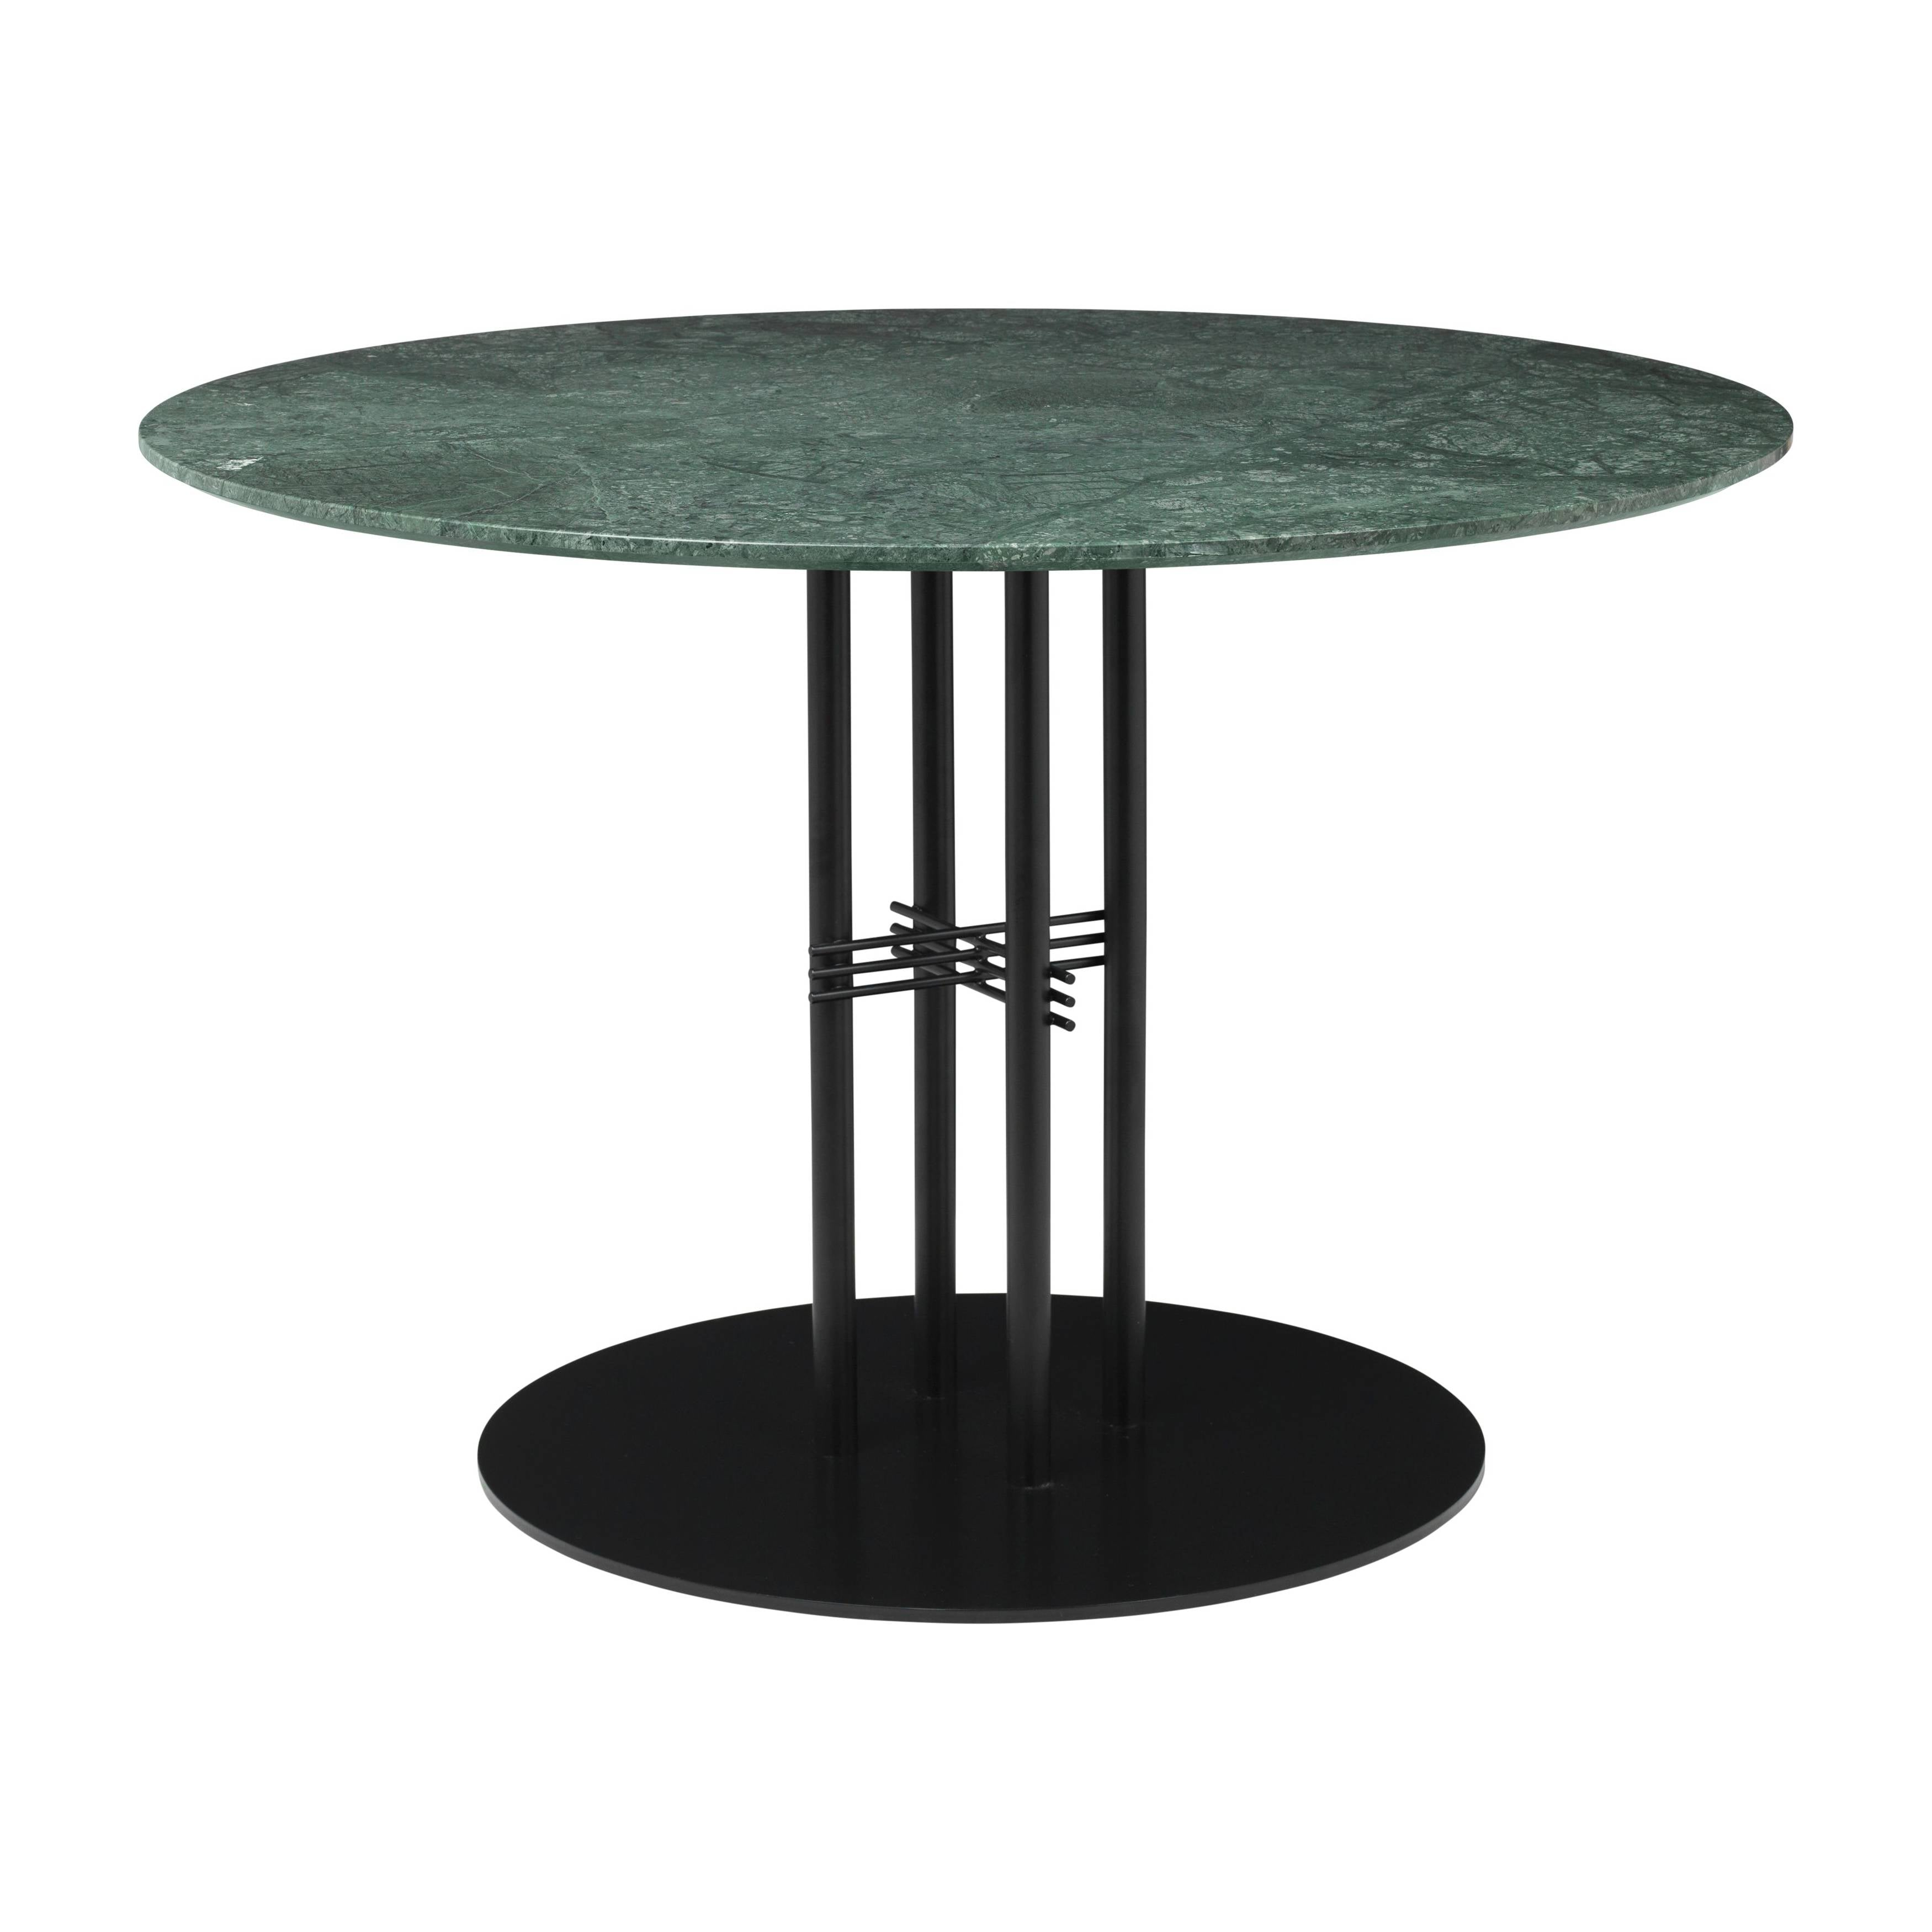 TS Column Dining Table: Medium + Black Base + Green Emperador Marble